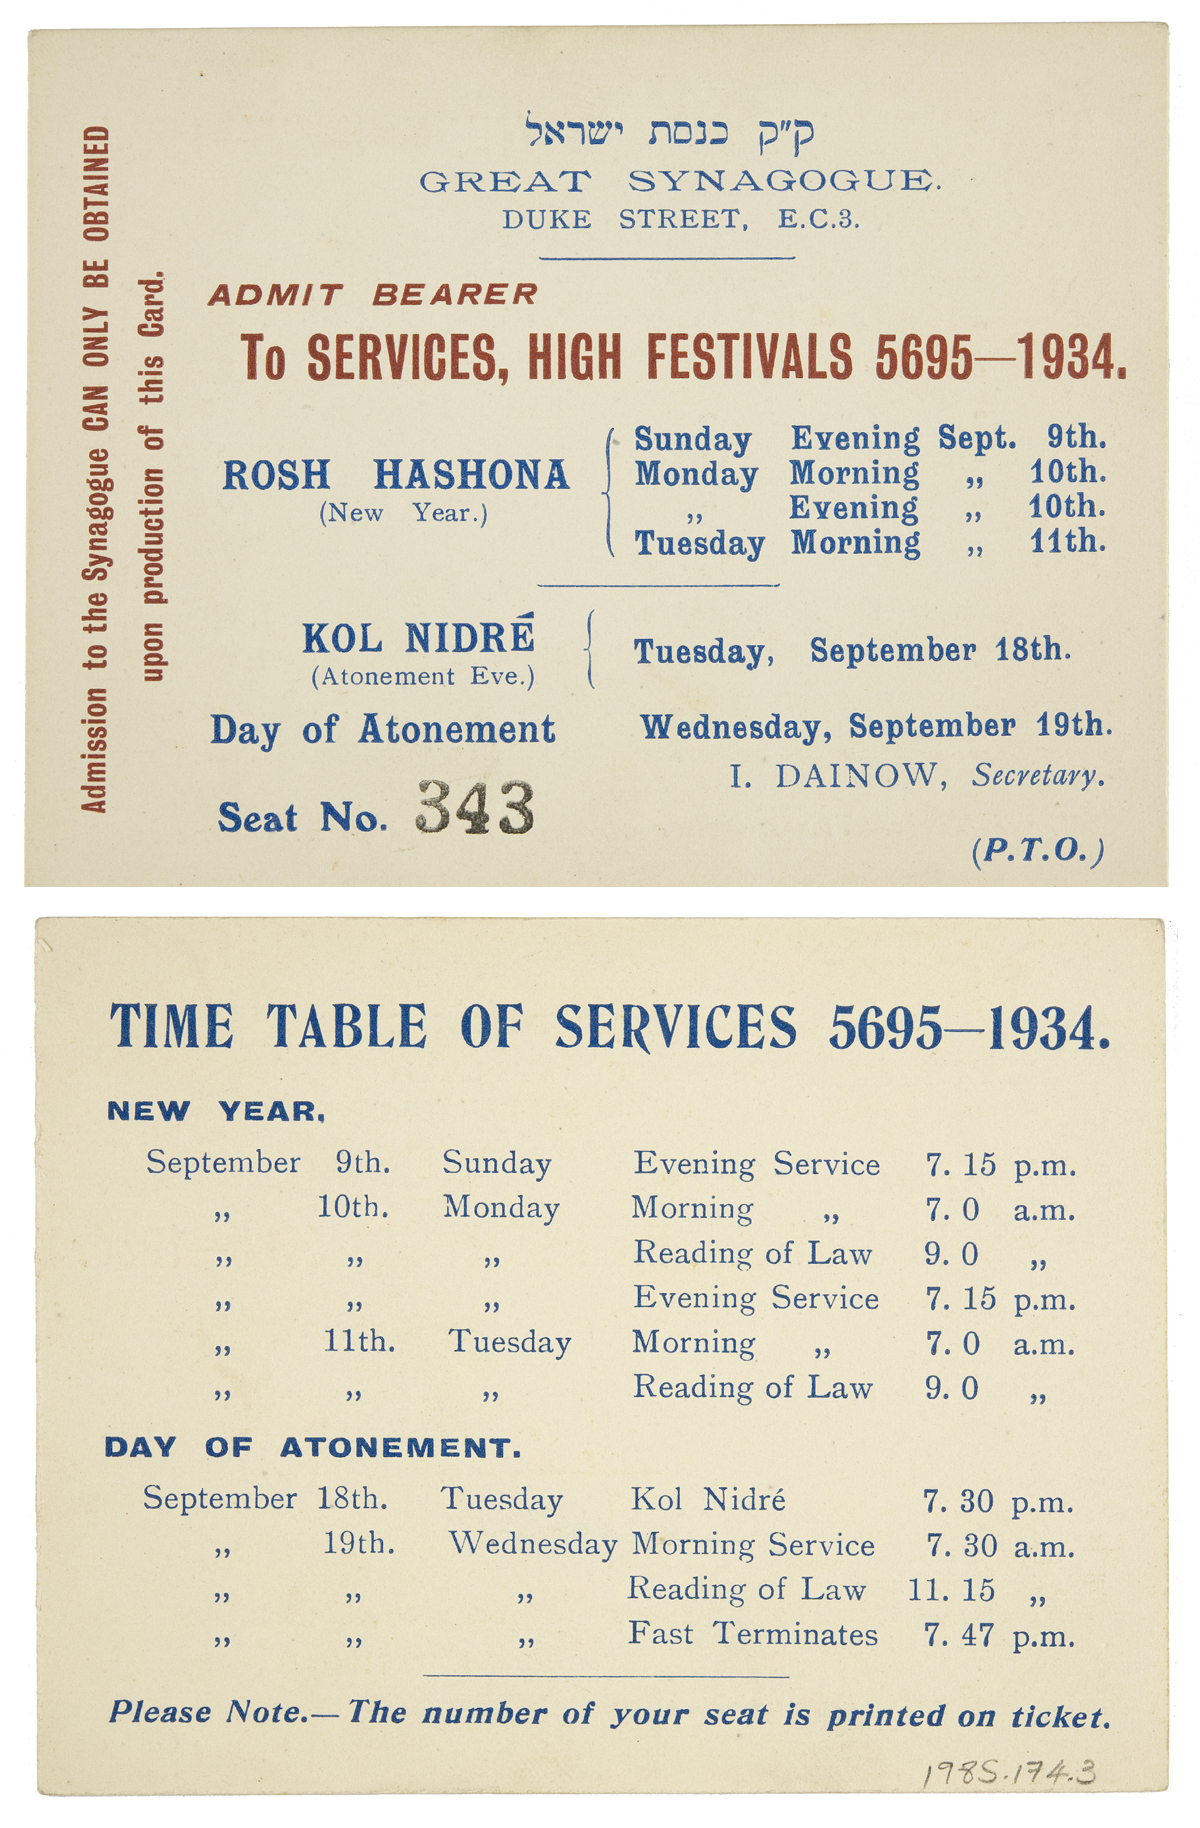 Great Synagogue Admission Ticket for High Holy Days, 1934